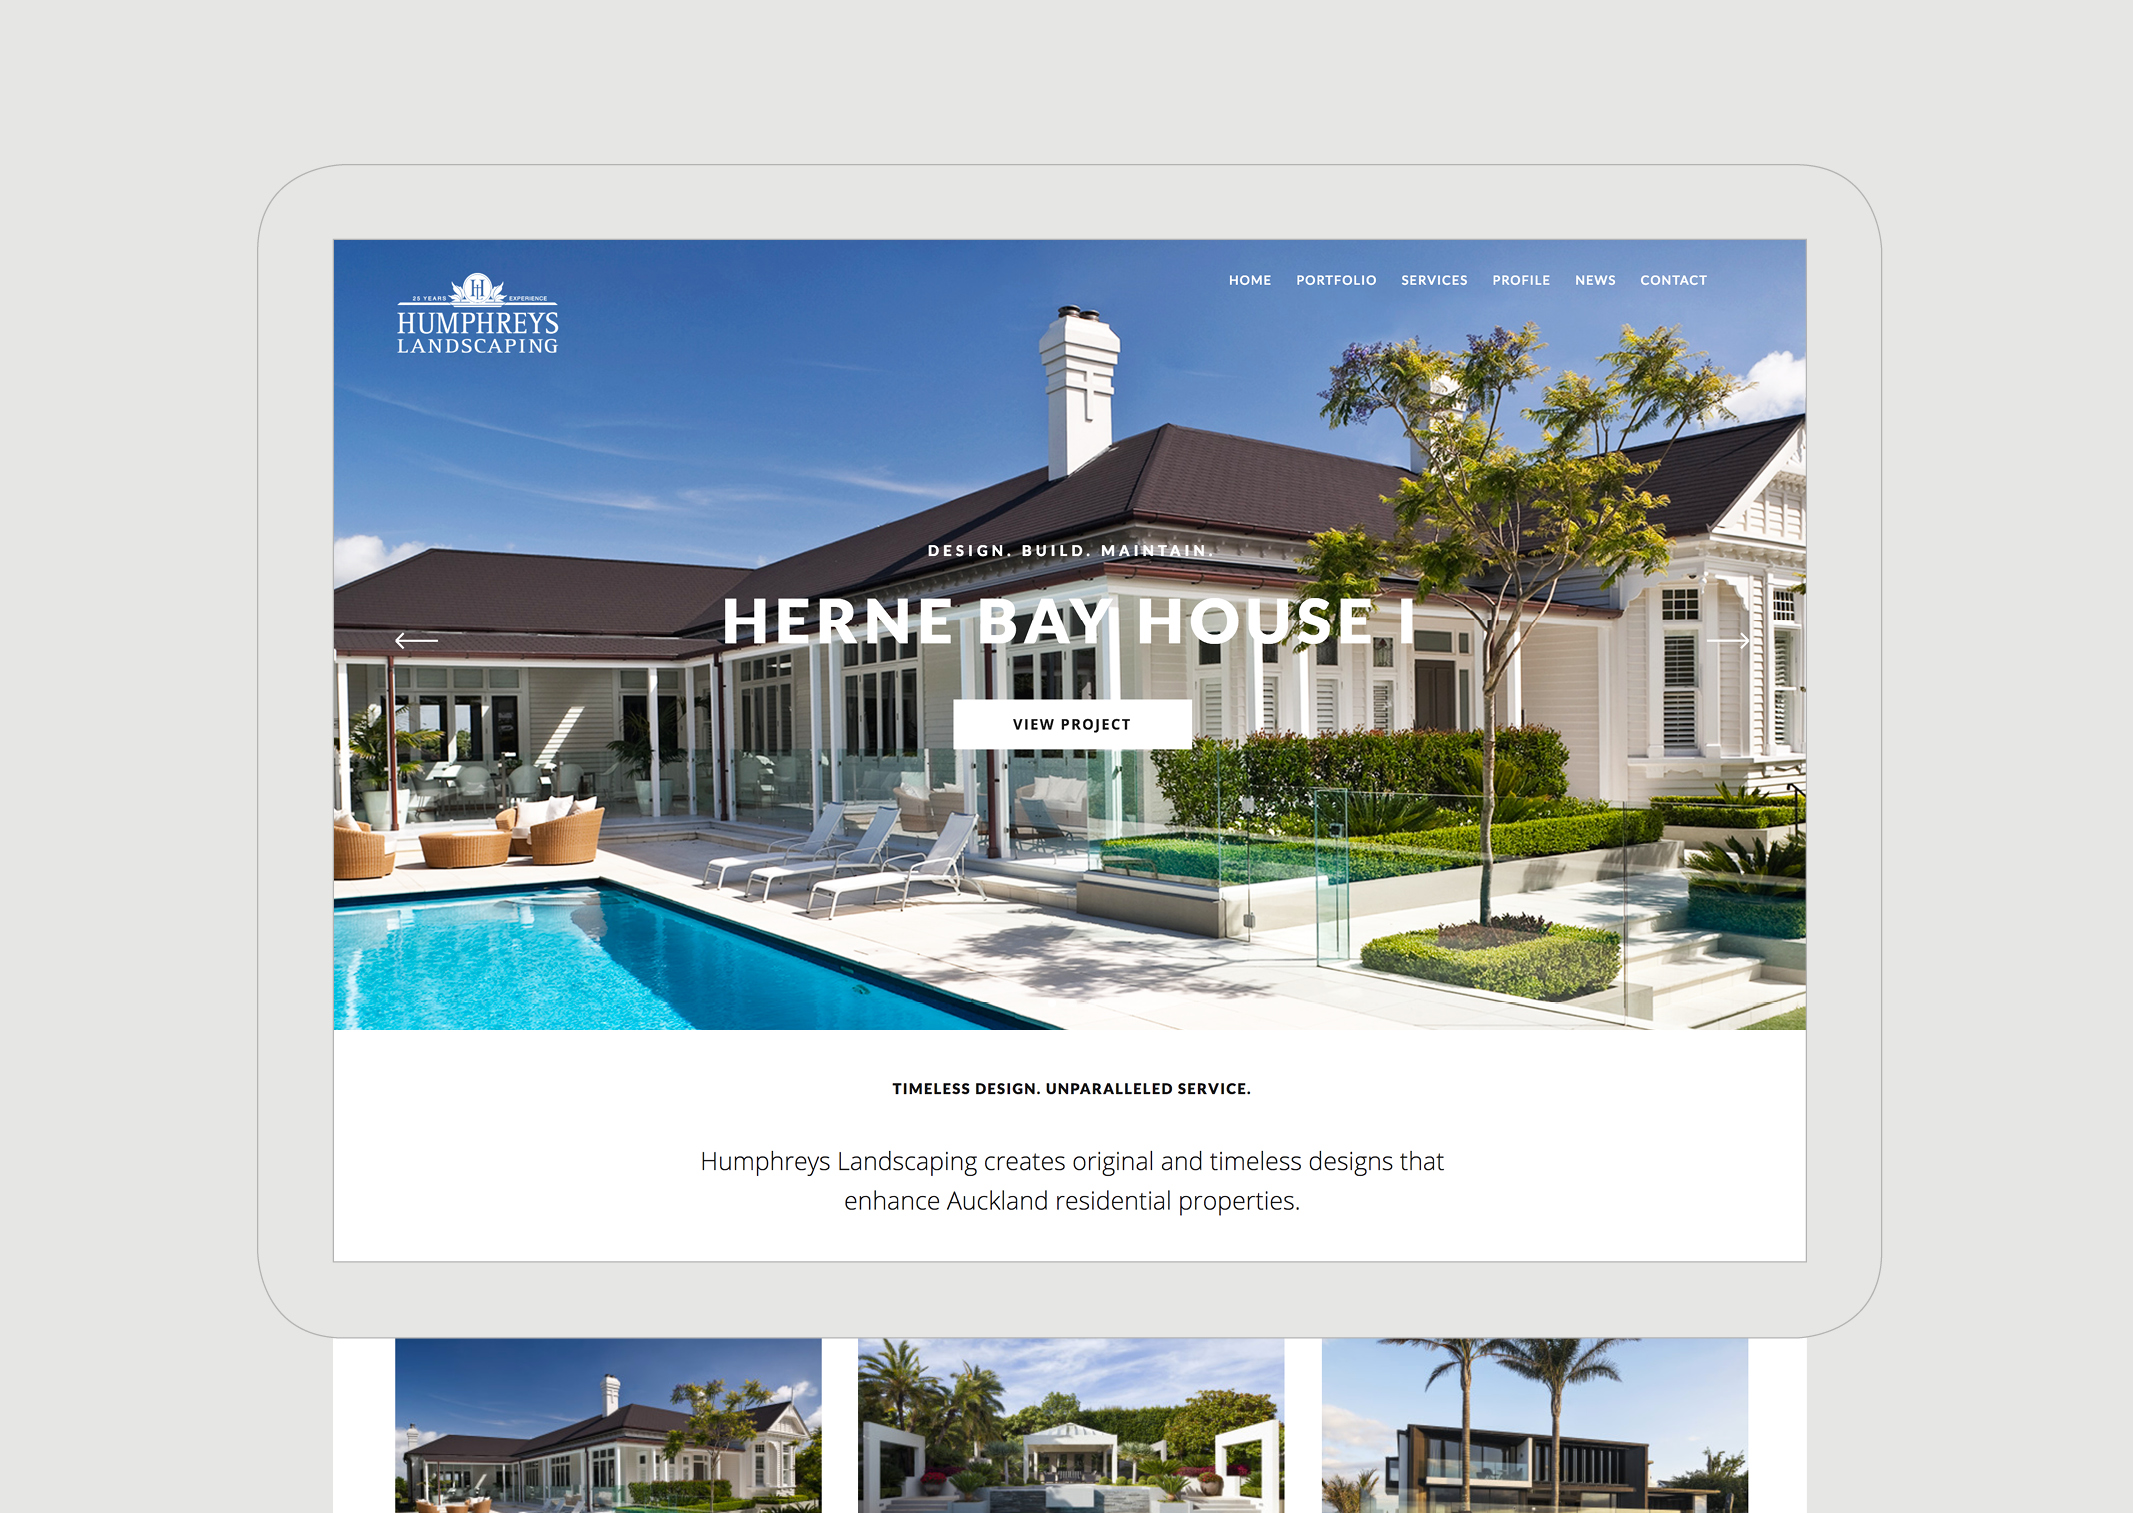 Humphreys Landscaping Website Portfolio Individual page featuring impressive Classic Villa House and smaller gallery detailing